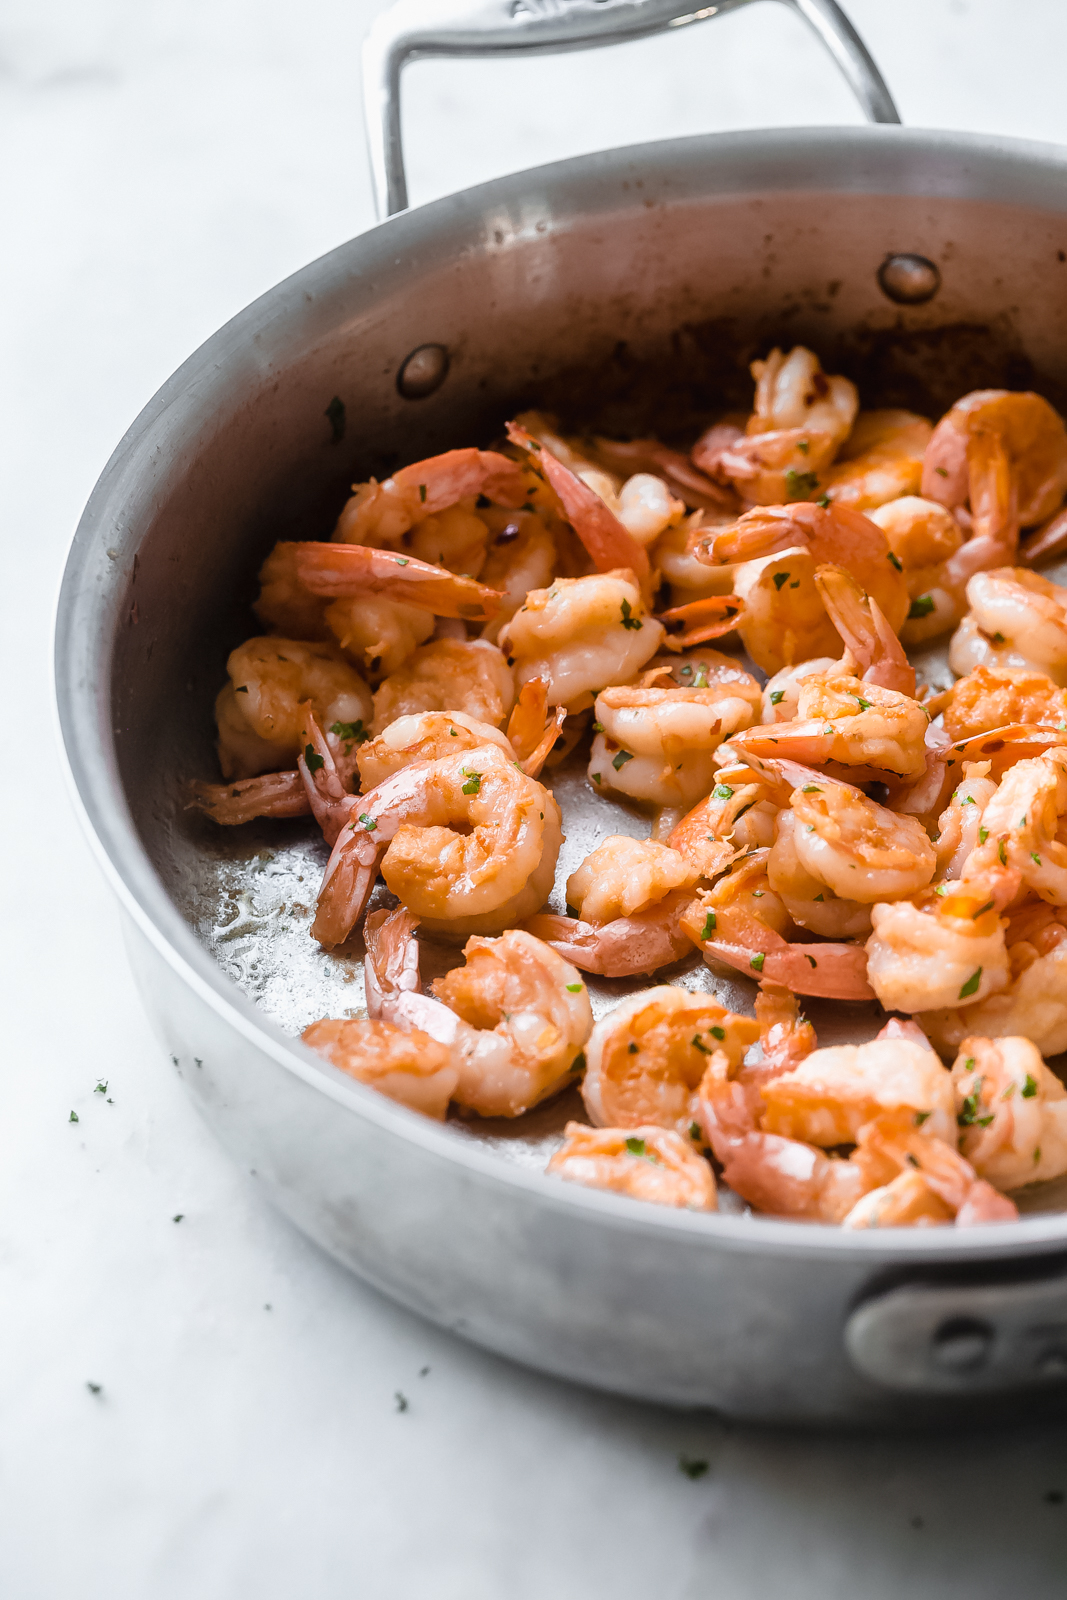 sautéed shrimp in saute pan on white marble surface